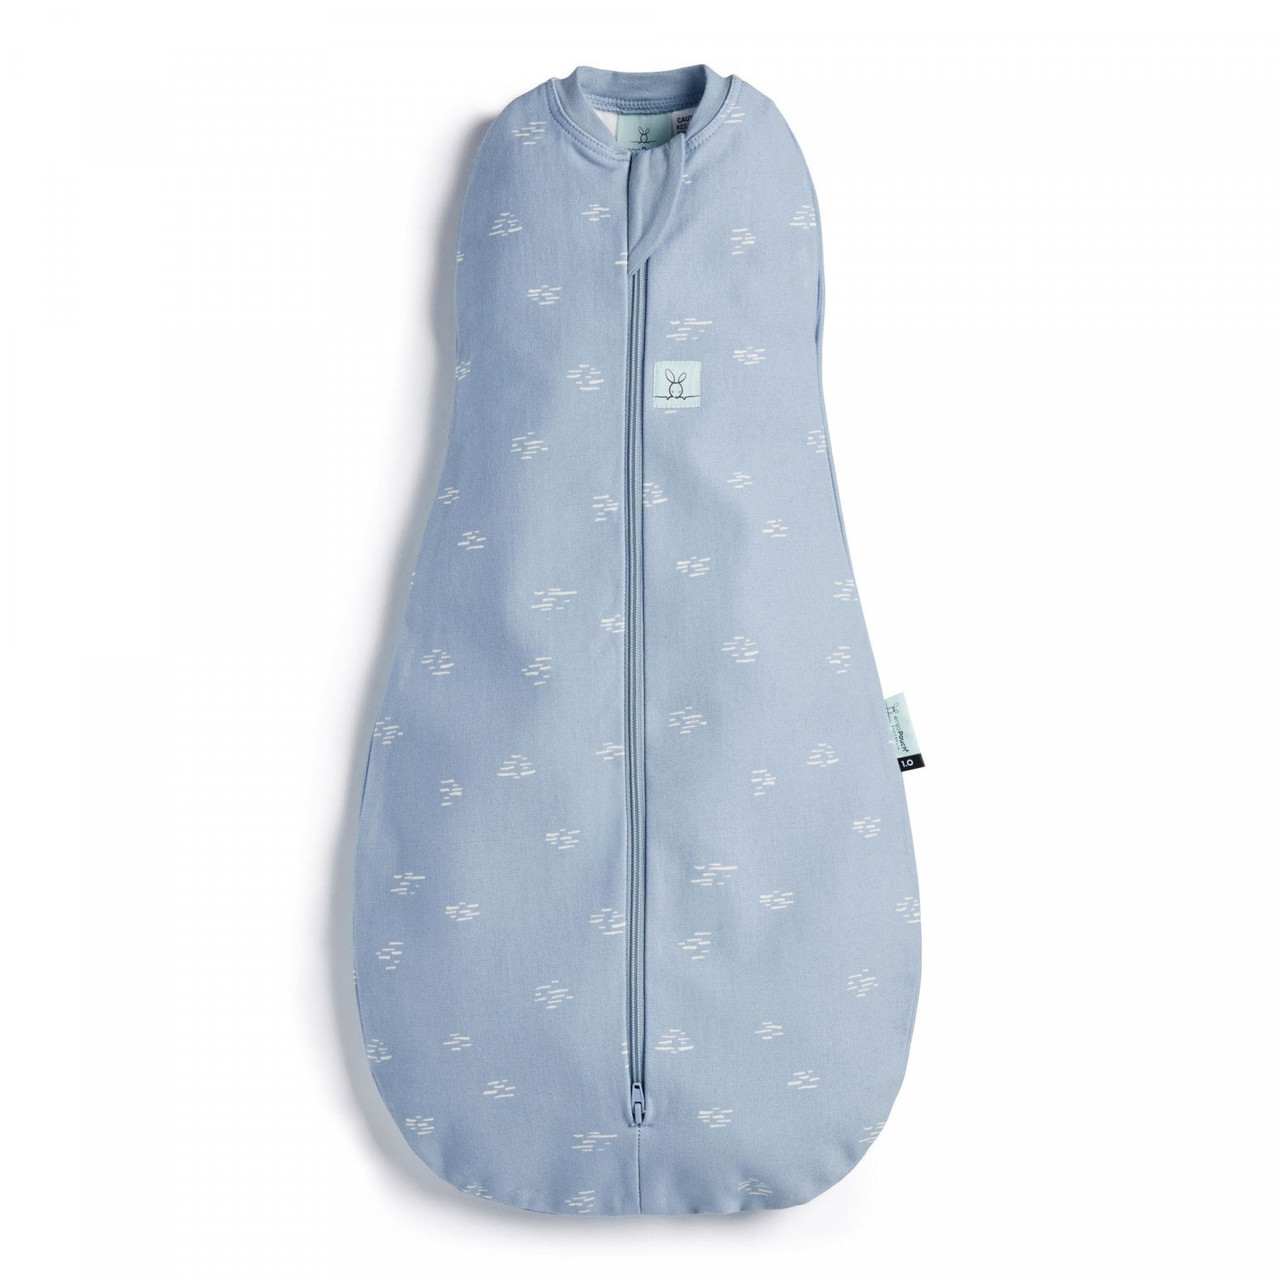 Ergopouch Cocoon Swaddle Bag 1.0 tog 0-3 Months RIPPLE at Baby Barn Discounts ergoPouch cocoon 1.0 tog is an escape-proof swaddle which converts to a sleeping bag.